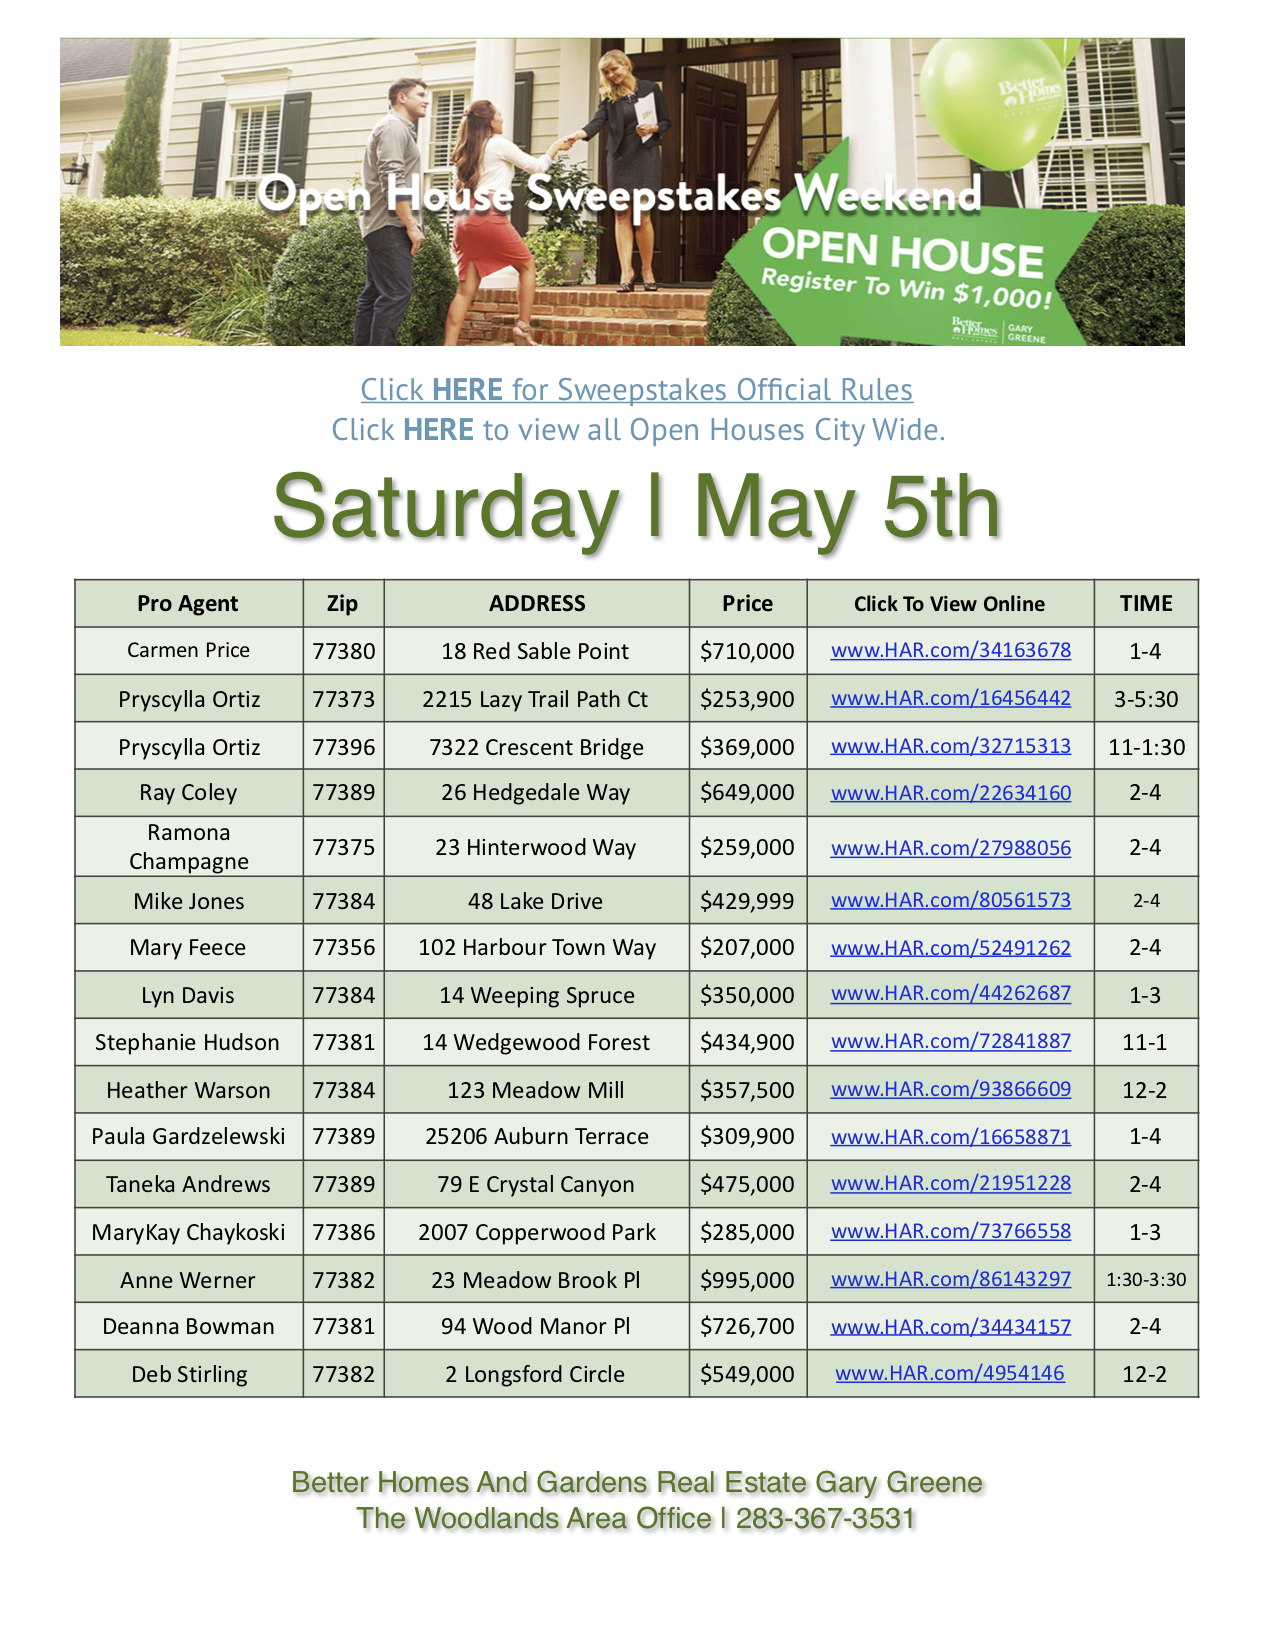 Open House $1,000 Sweepstakes Weekend | Saturday May 5th